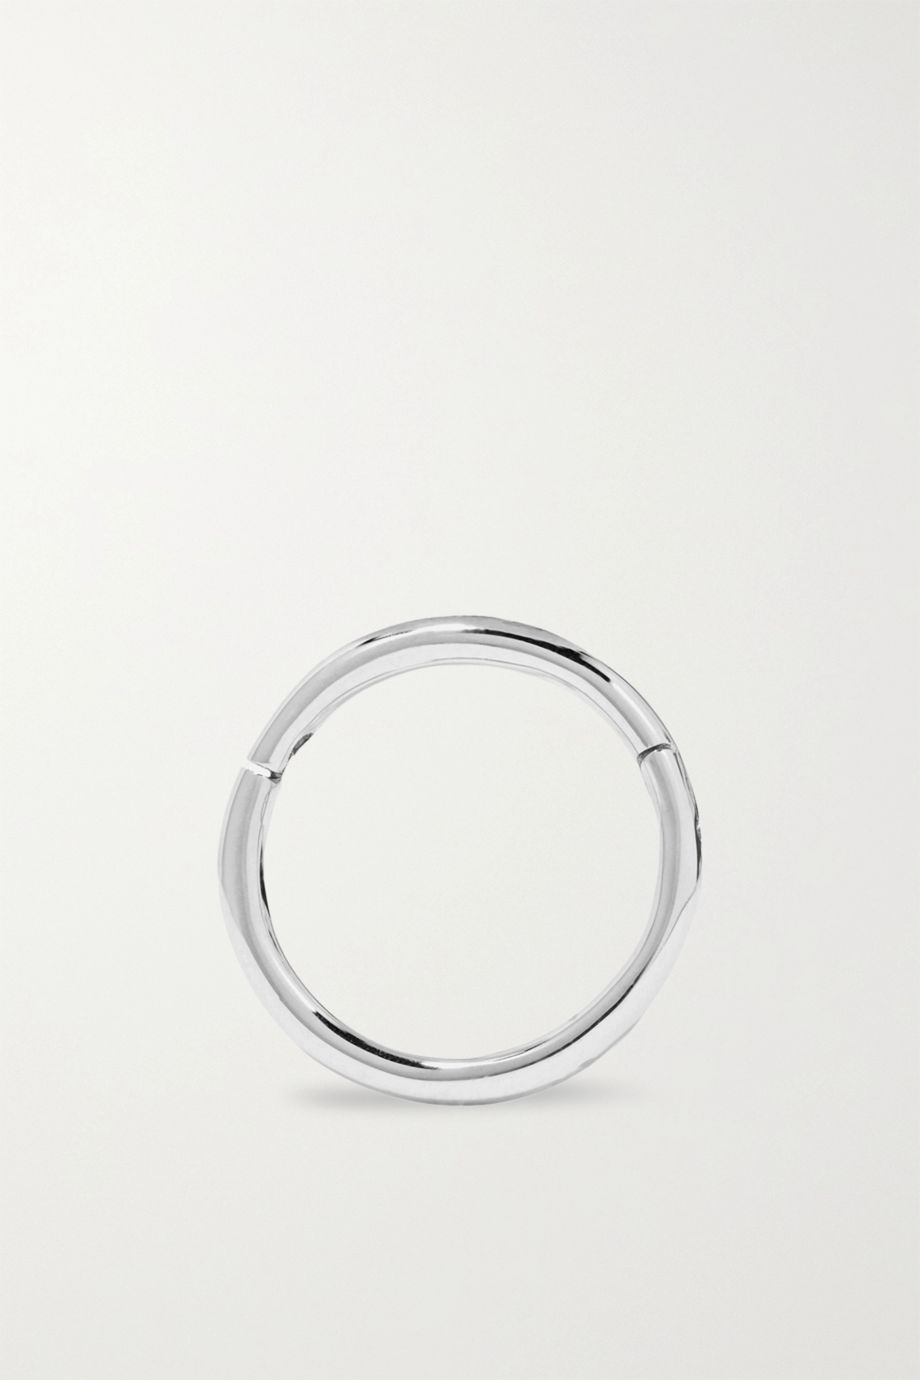 MARIA TASH 8mm 14-karat white gold hoop earring